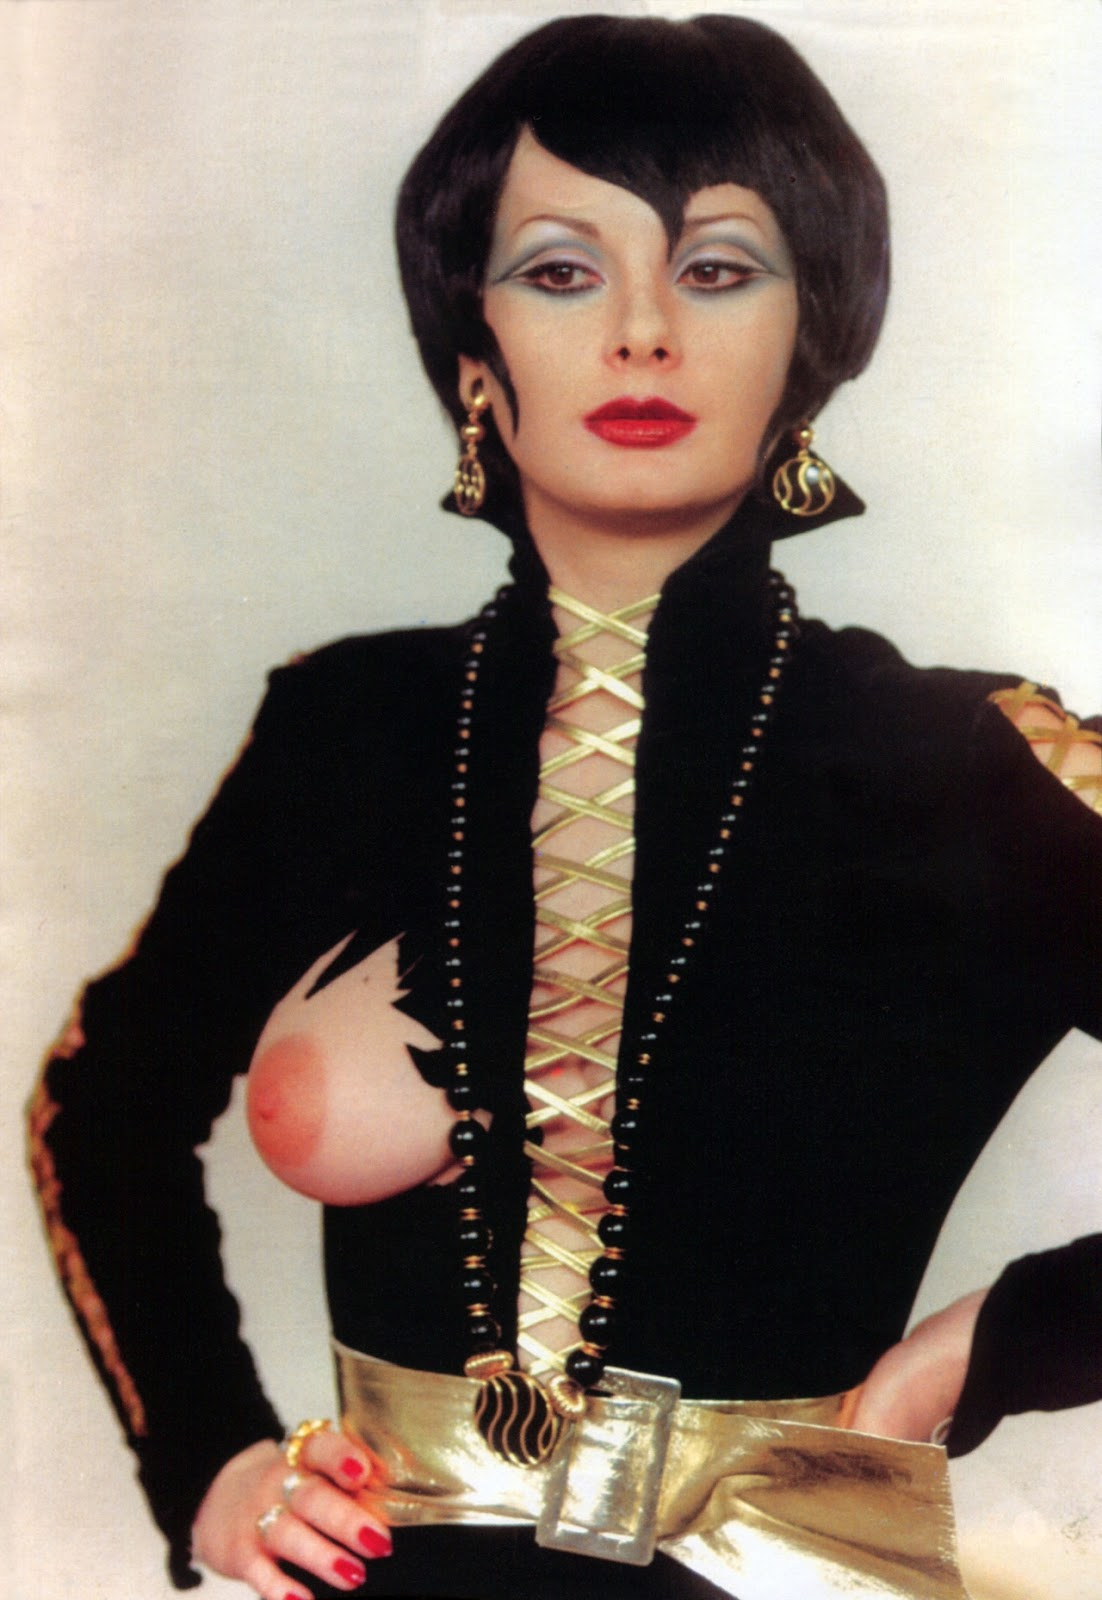 Costume of Provocation Edwige Fenech